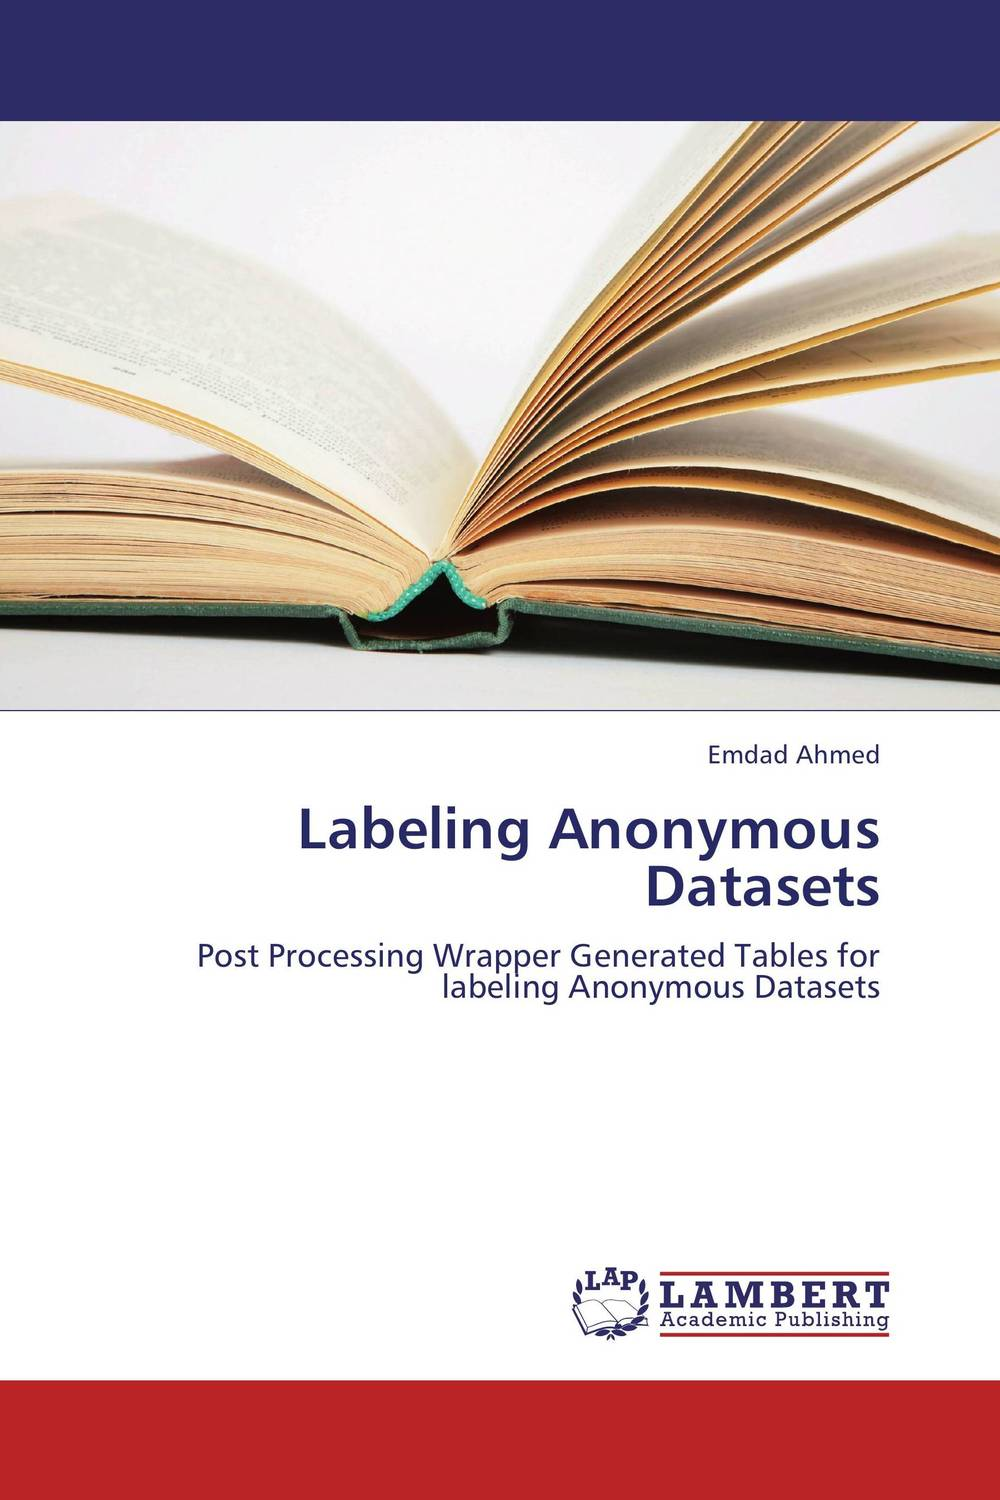 Labeling Anonymous Datasets